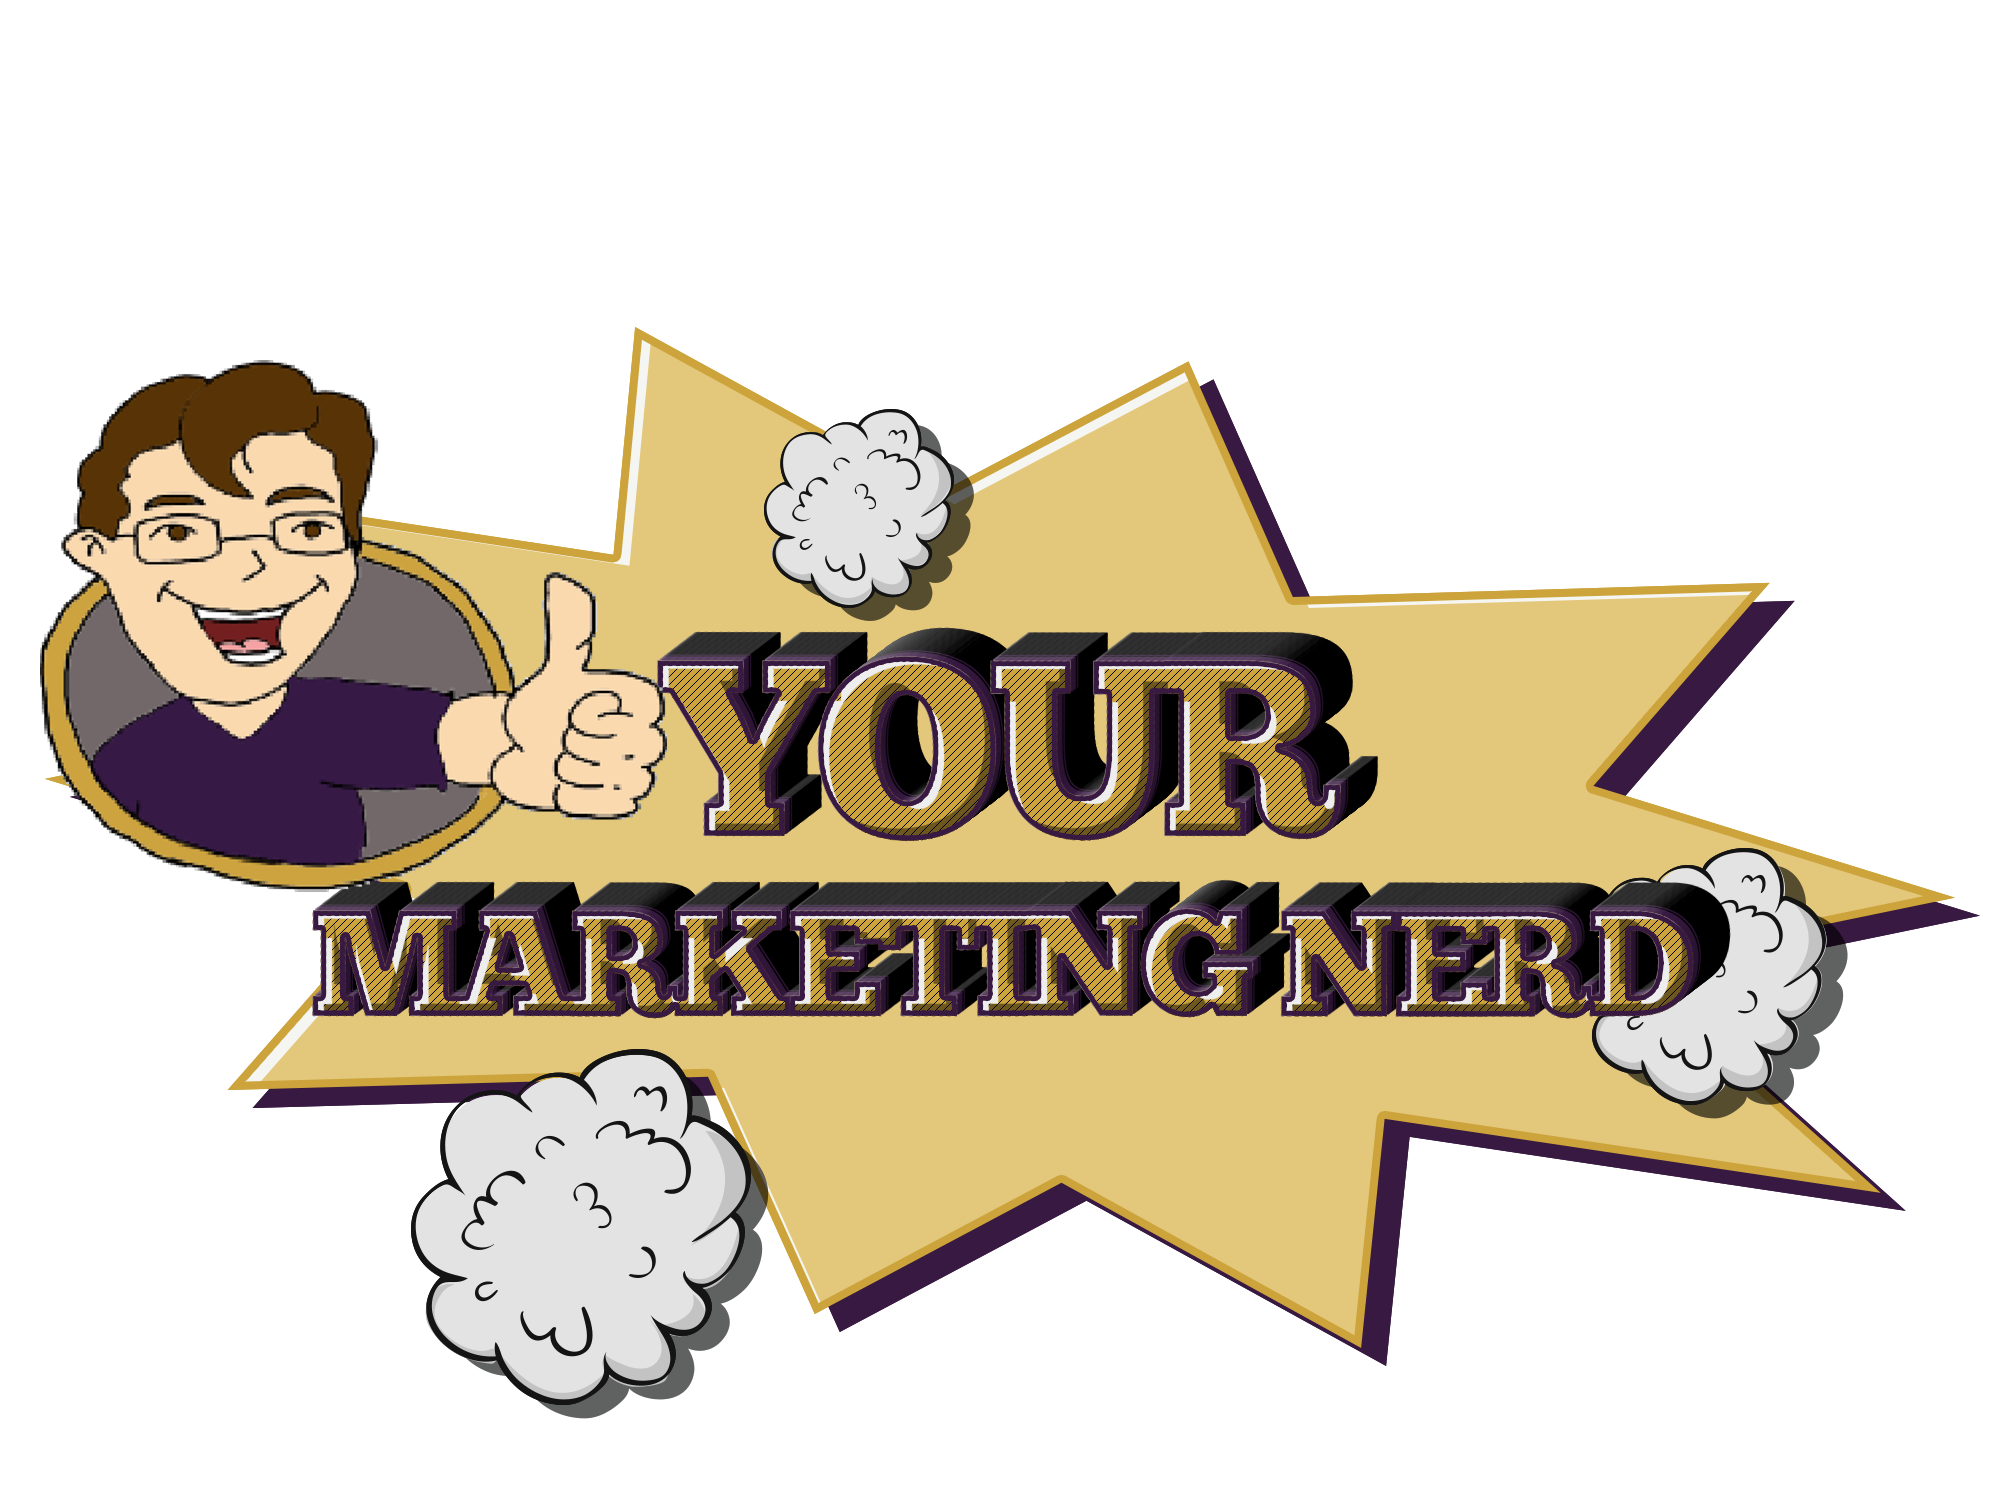 Your Marketing Nerd